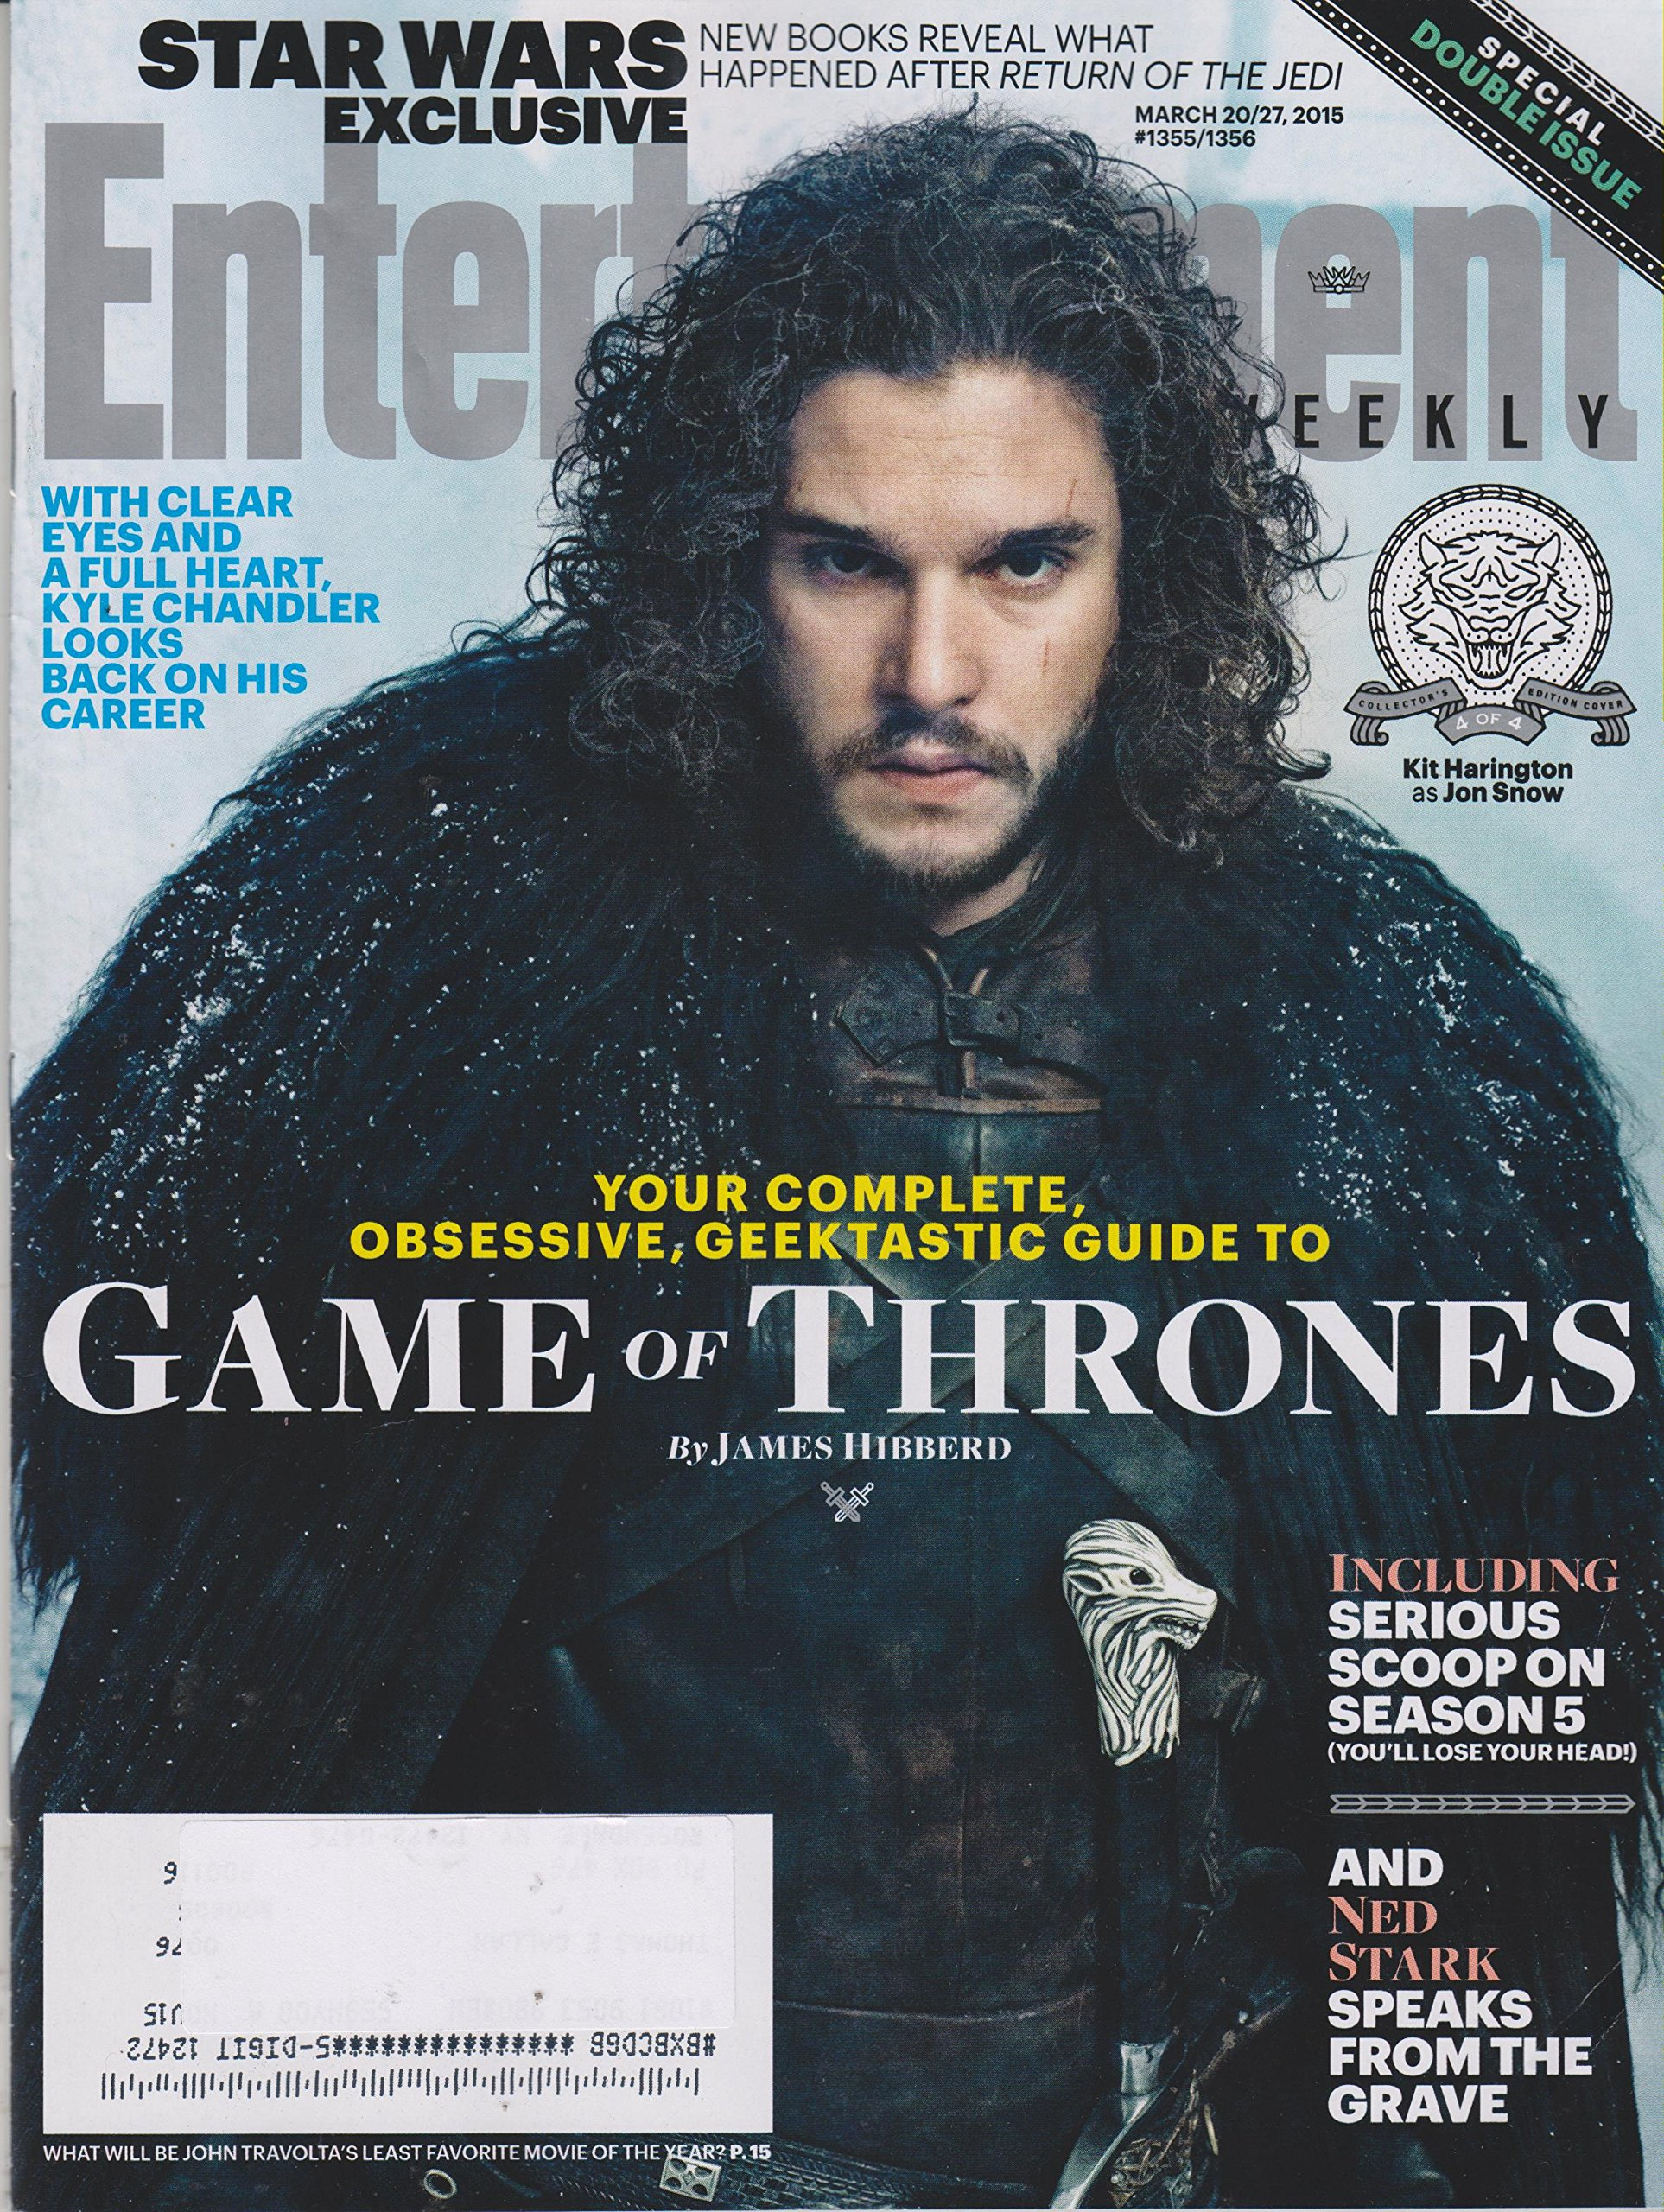 Entertainment Weekly March 27, 2015